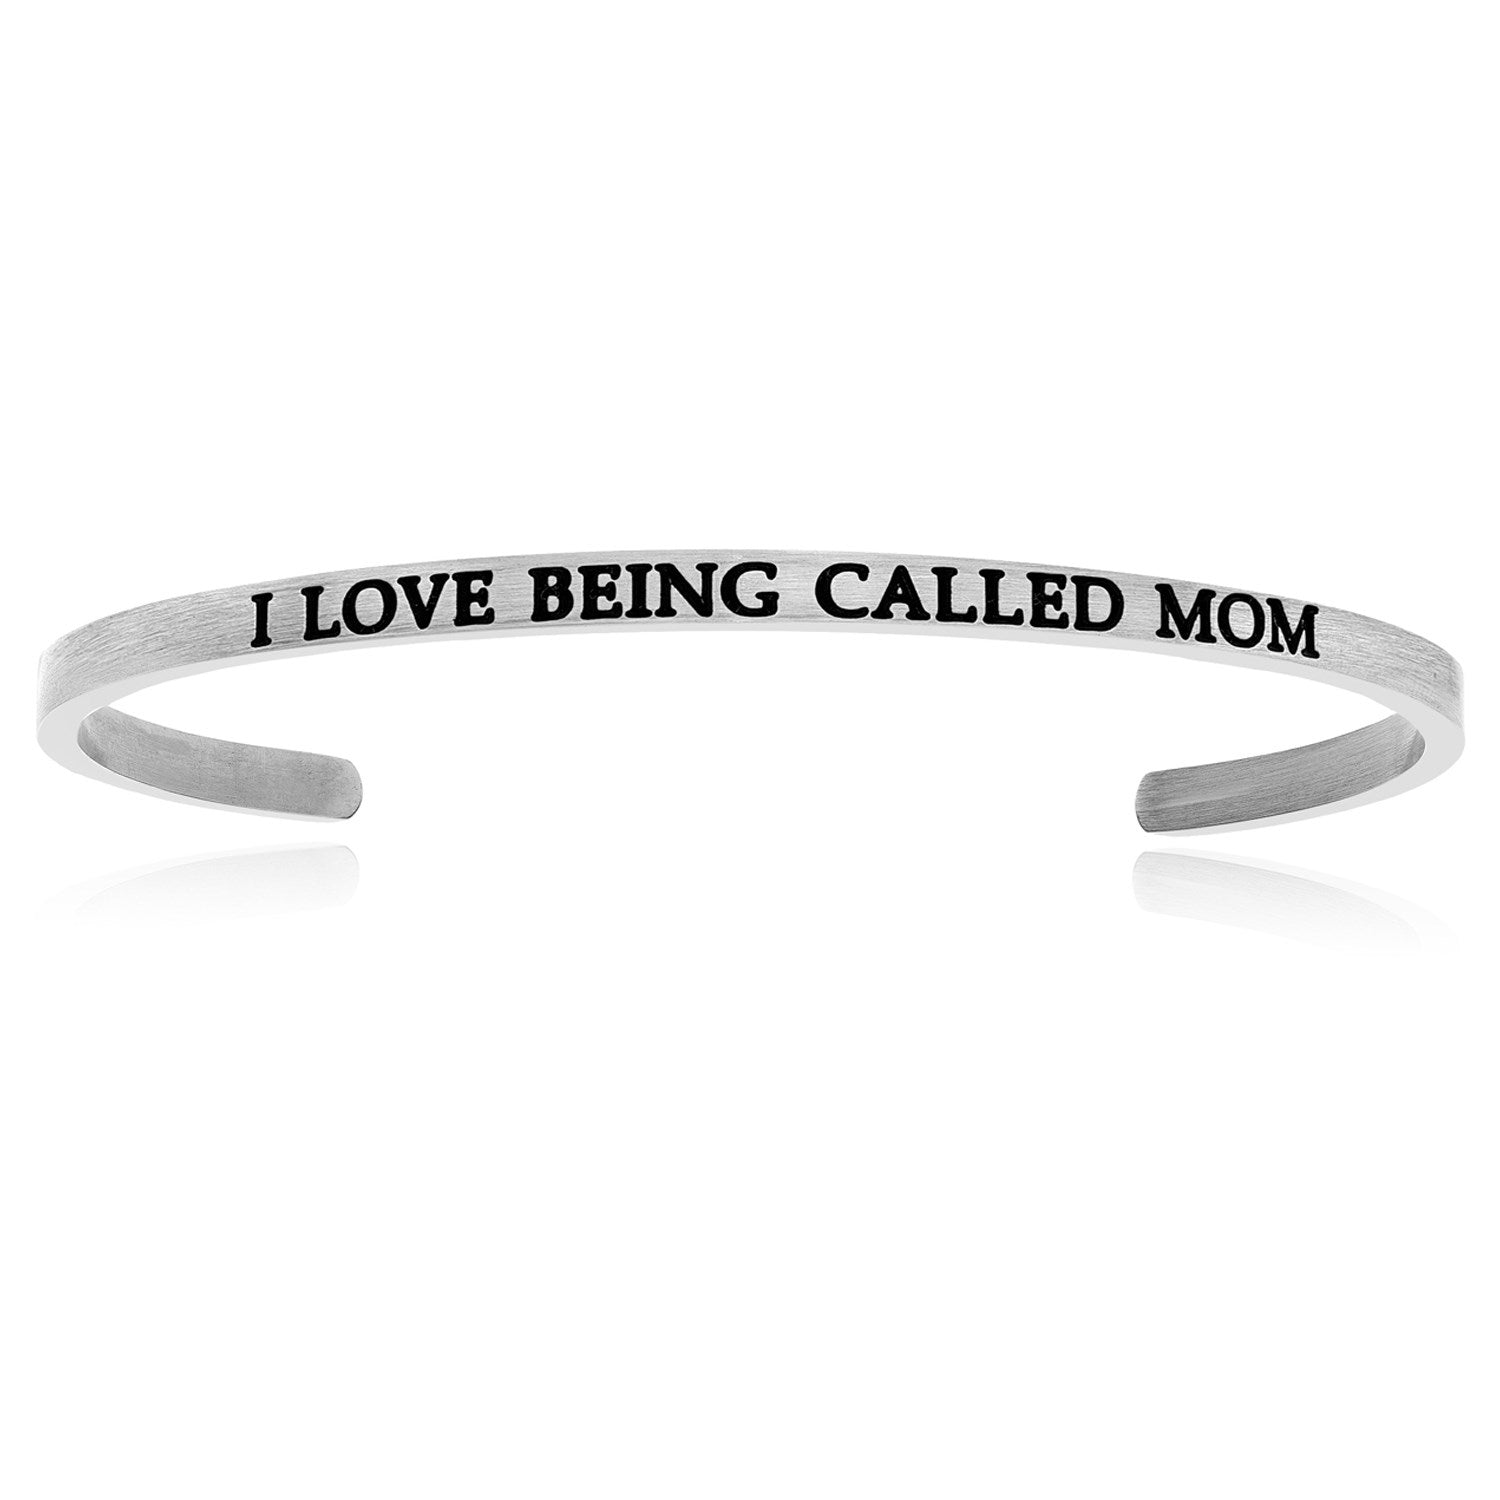 Luxury London Style Original Stainless Steel I Love Being Called Mom Cuff Bracelet